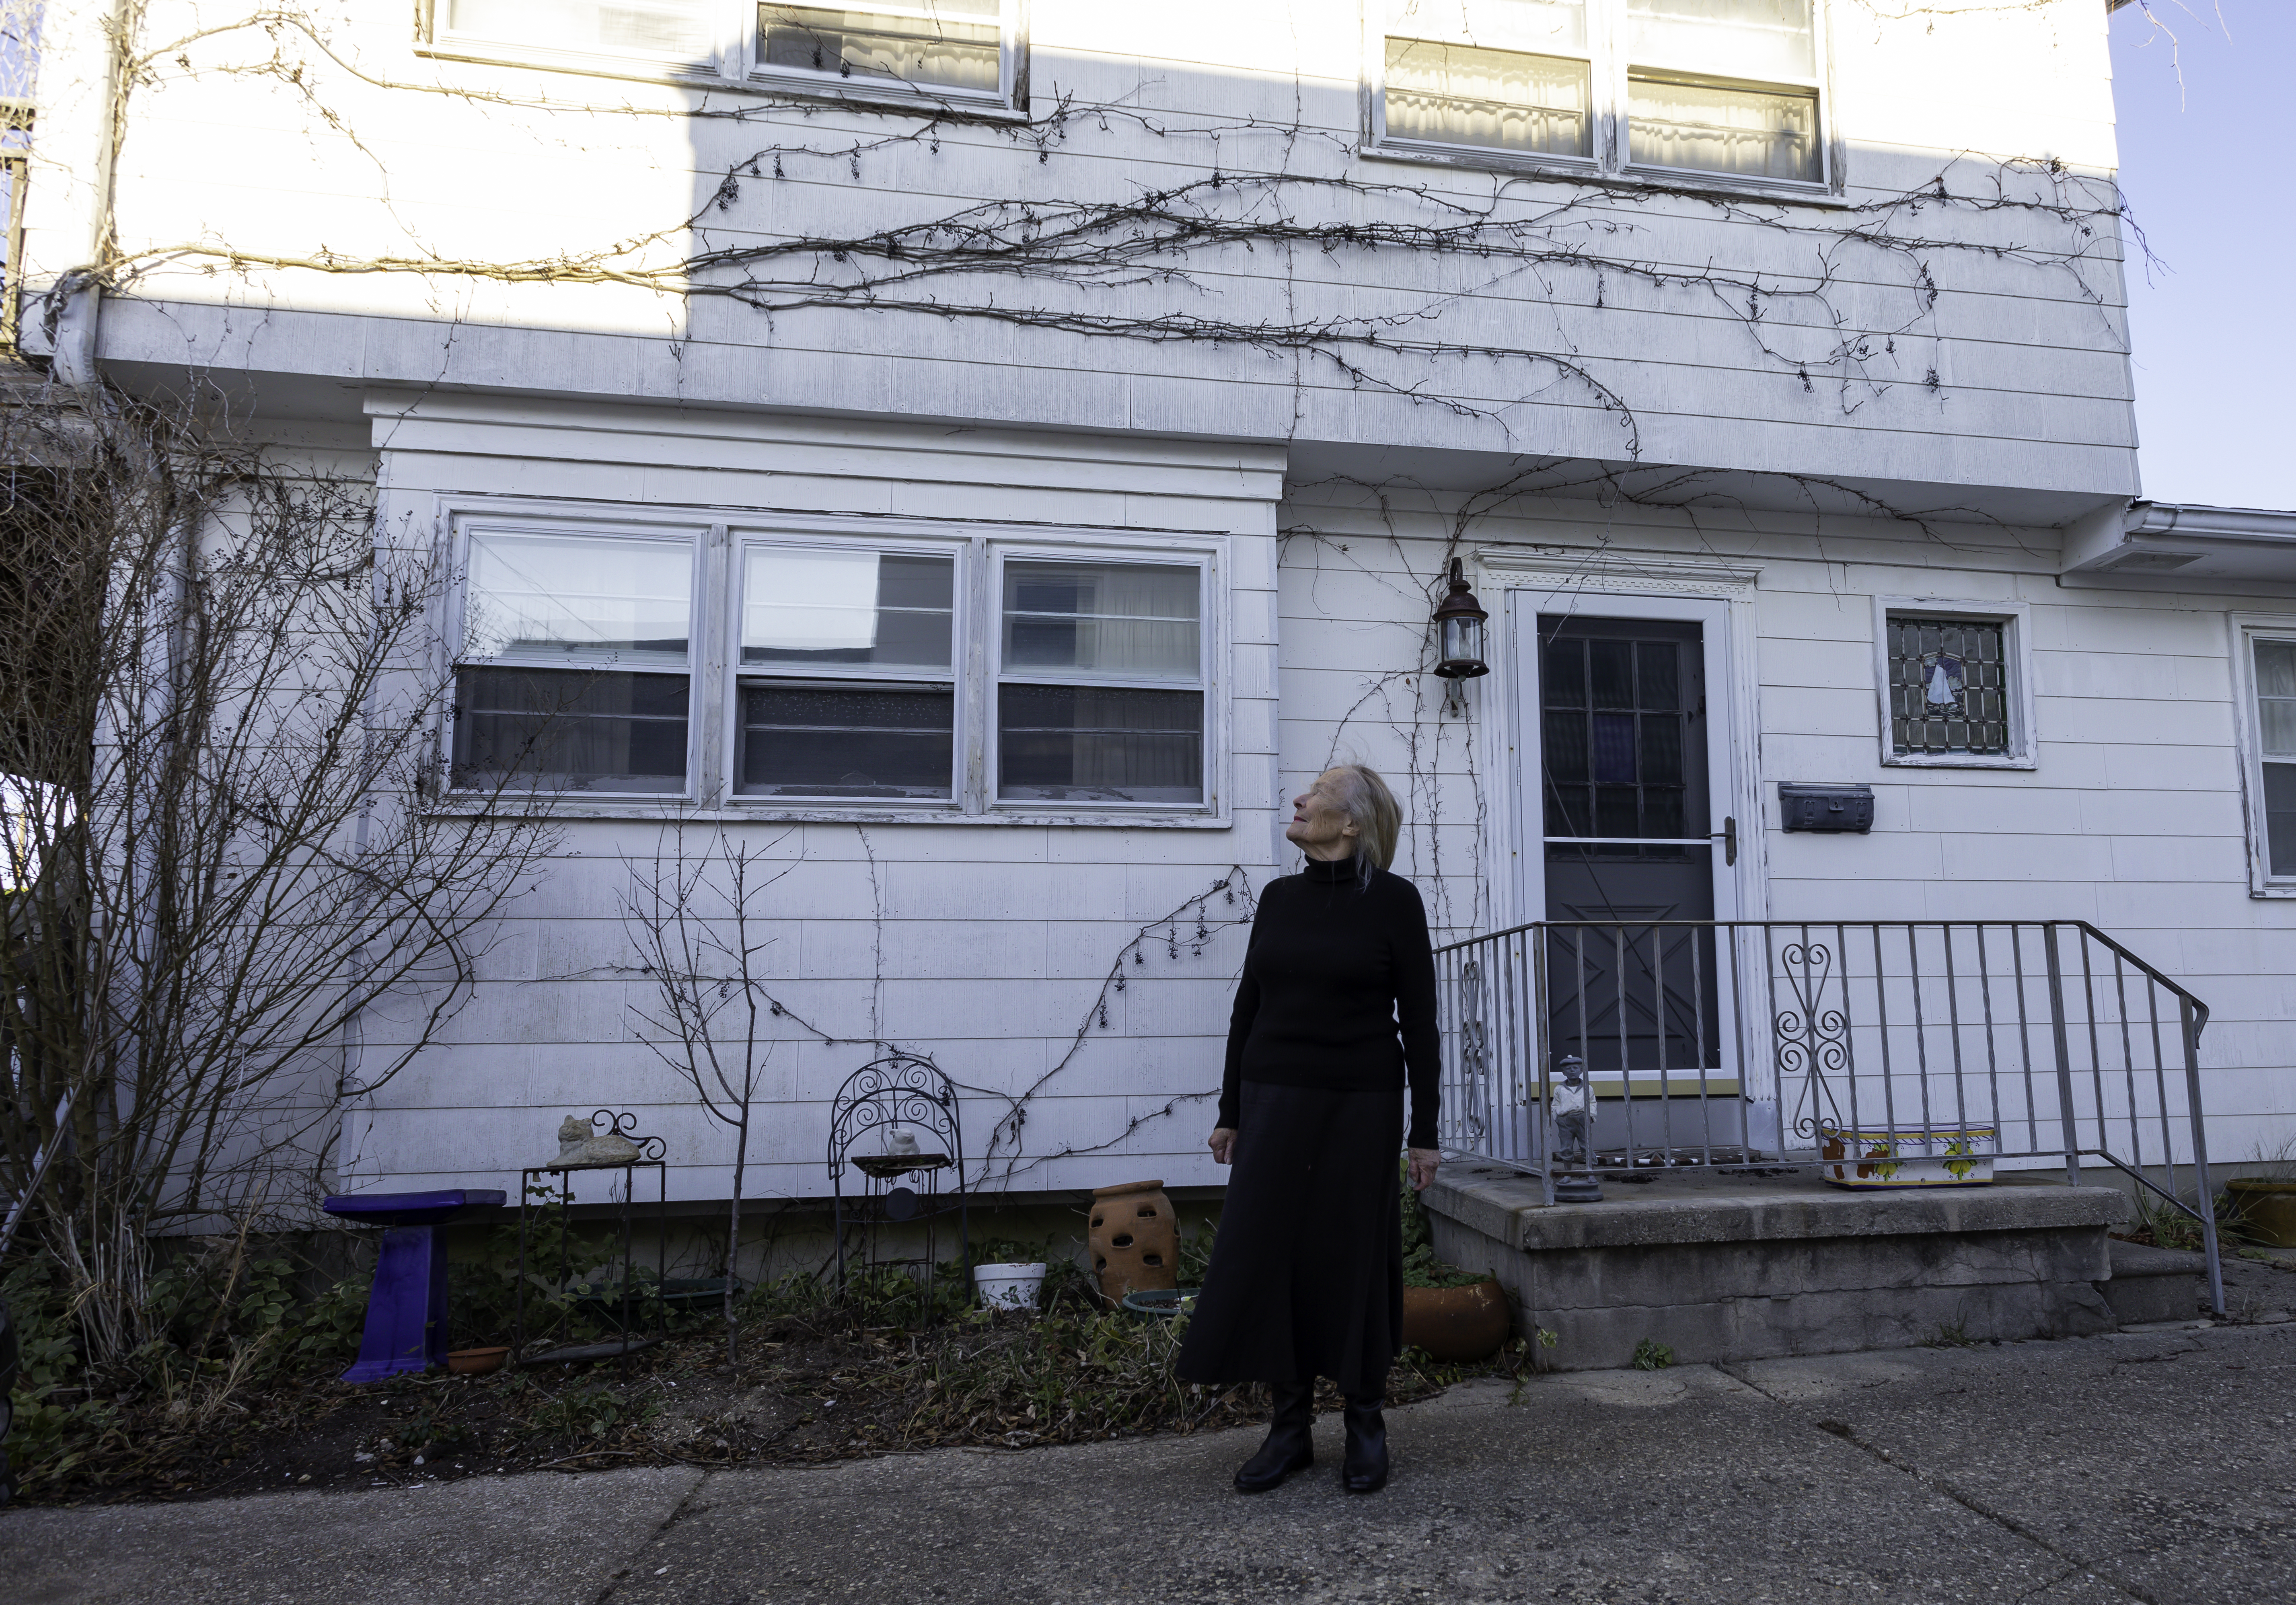 Jersey Shore town ticketed homeowner for vines that creep across her home. She fought them in court.